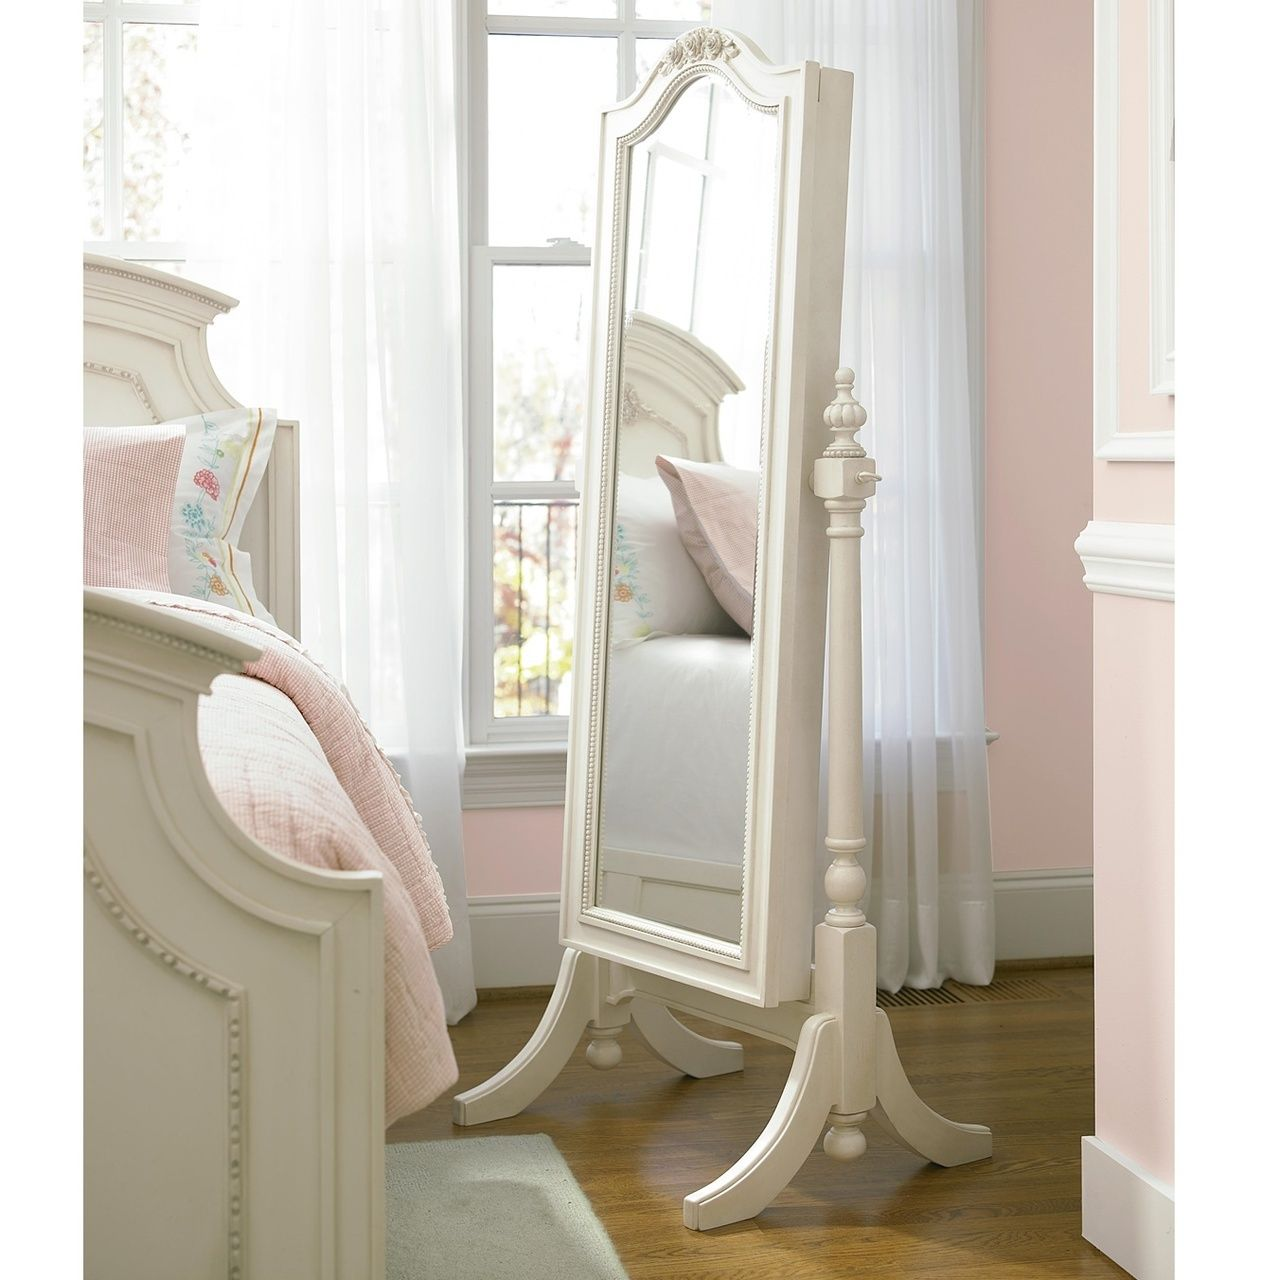 Rosalie White Standing Mirror With Jewelry Storage Modern Bedroom Design Storage Mirror Home